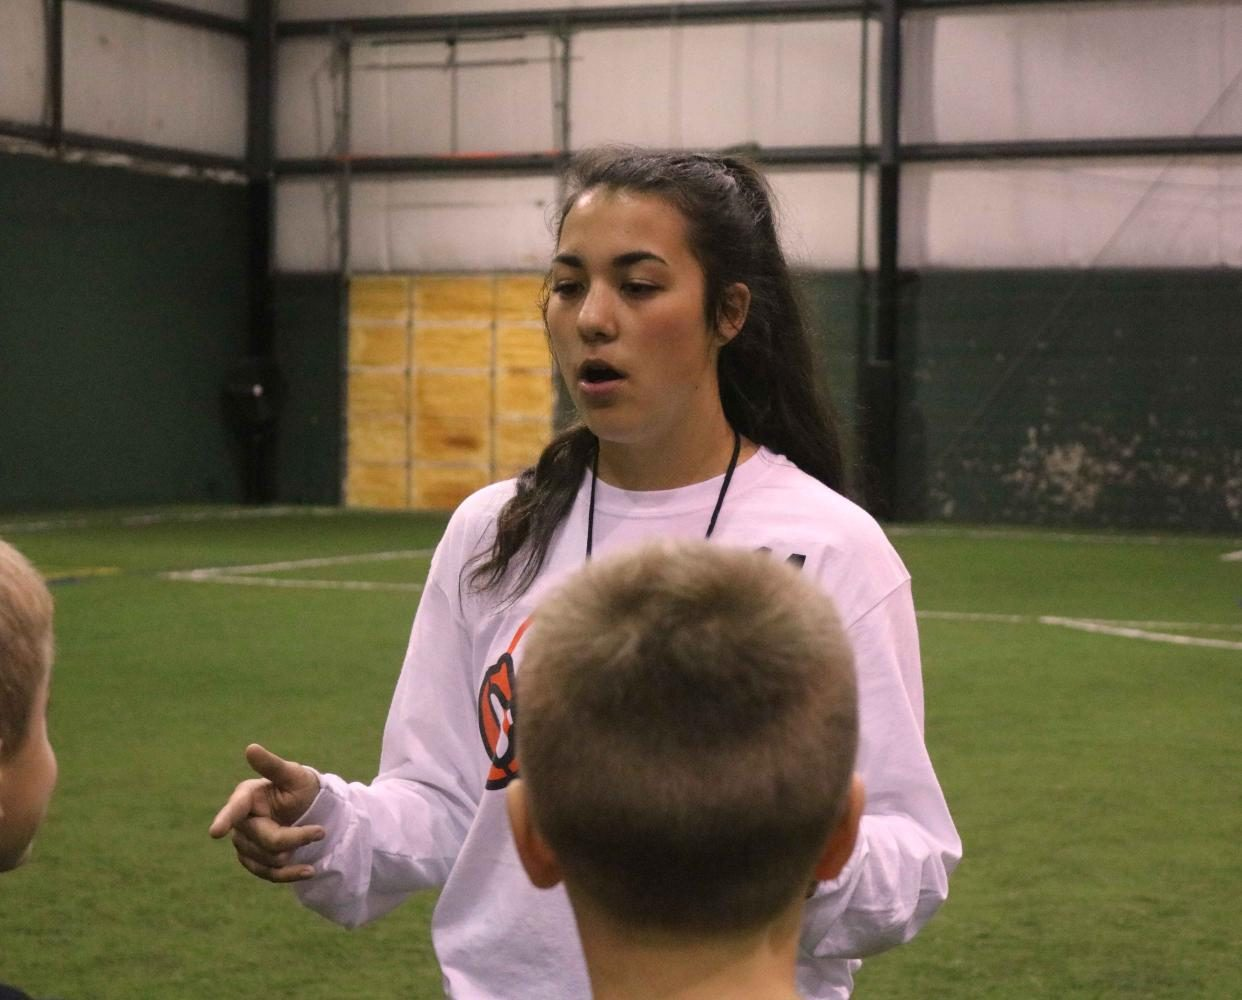 At the soccer Lock-In junior Kara Kinser, gives the kids instructions on how to safely play soccer. The Soccer Lock-In was a fundraiser to help support the girls' soccer program.